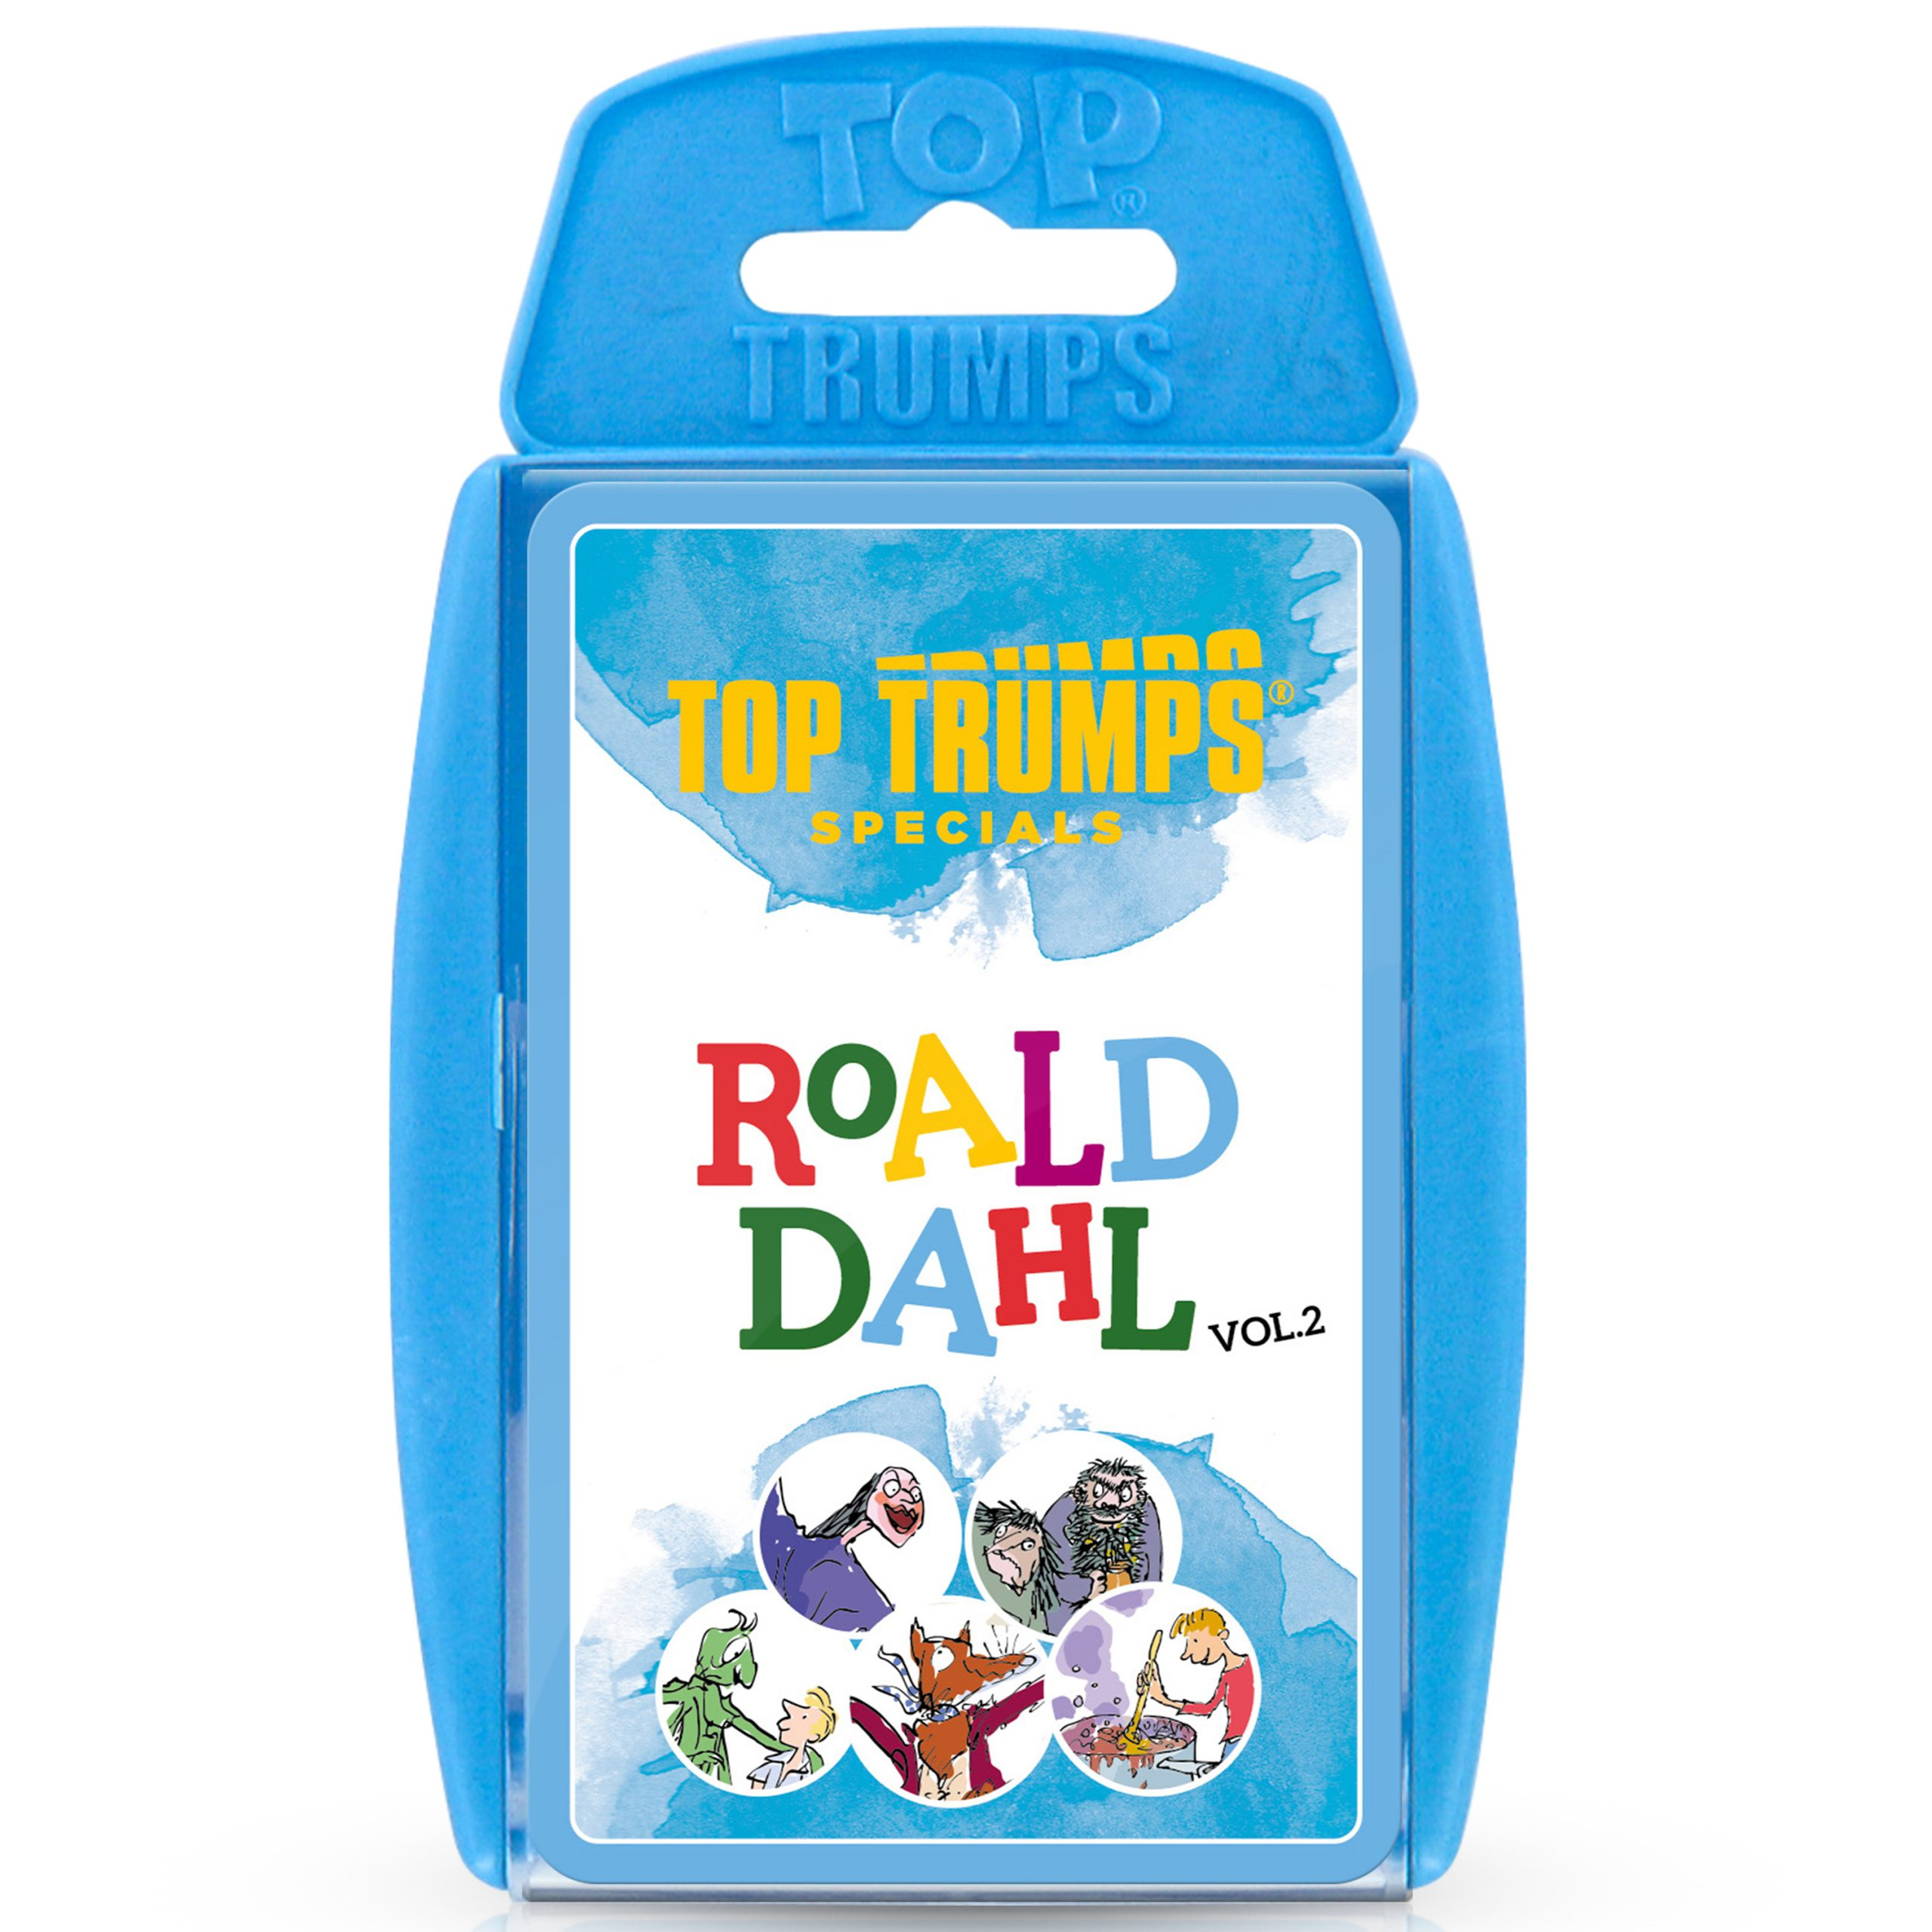 Roald Dahl Vol. 2 Top Trumps